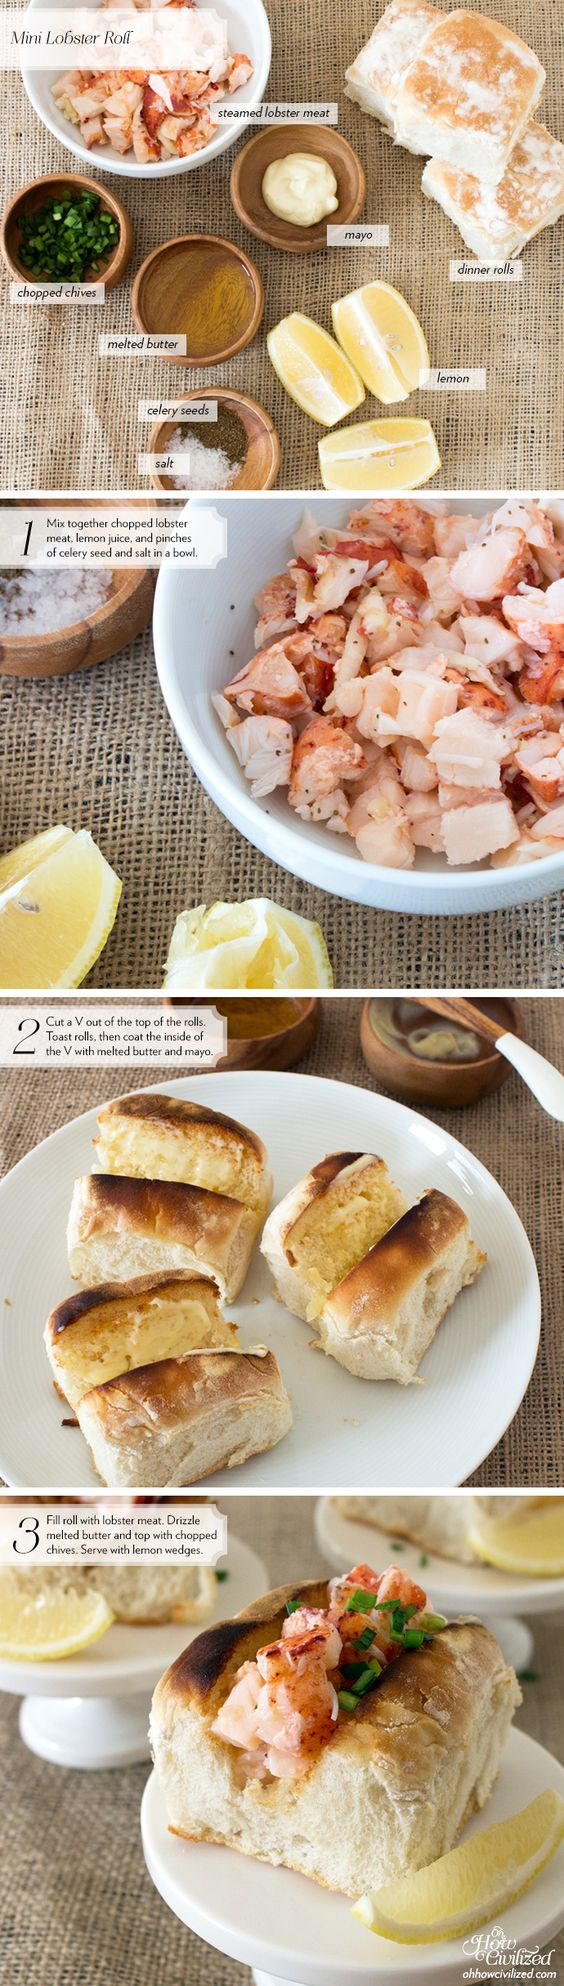 Lobster rolls, Lobsters and Tea sandwiches on Pinterest